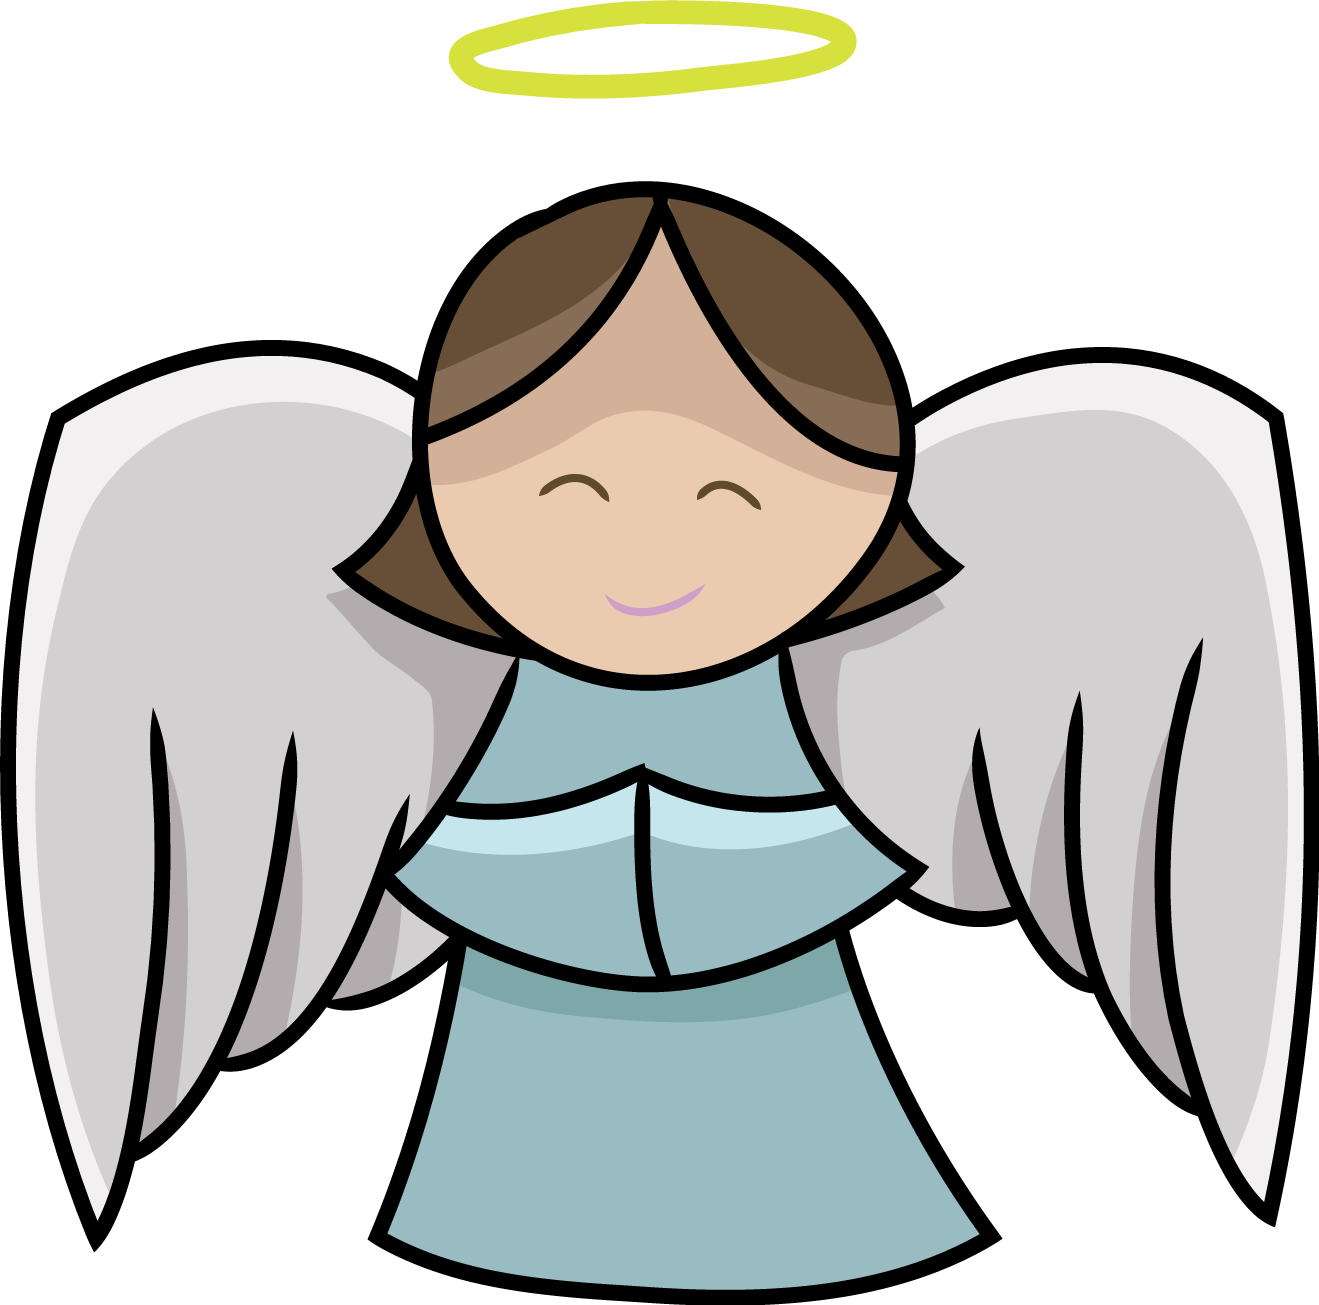 shepherds and angels clipart at getdrawings com free for personal rh getdrawings com free clipart angel with halo black and white free clipart angel images